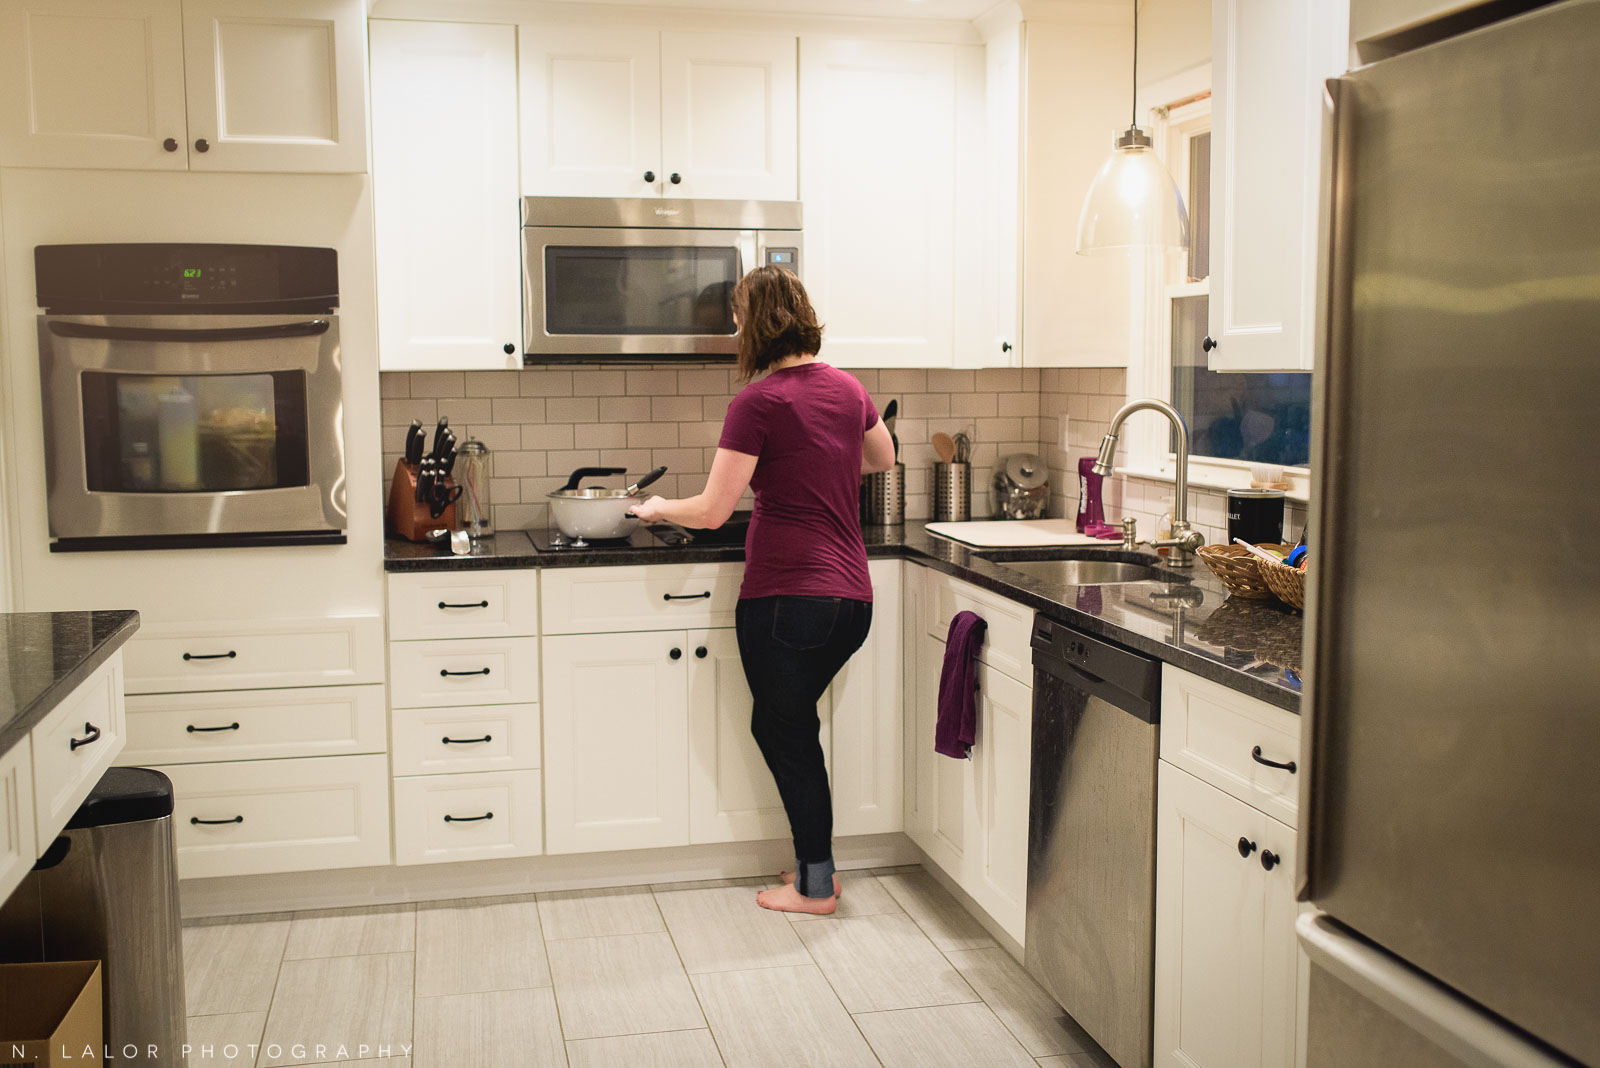 Mom getting breakfast ready in the kitchen, early in the morning. Documentary photo by N. Lalor Photography.